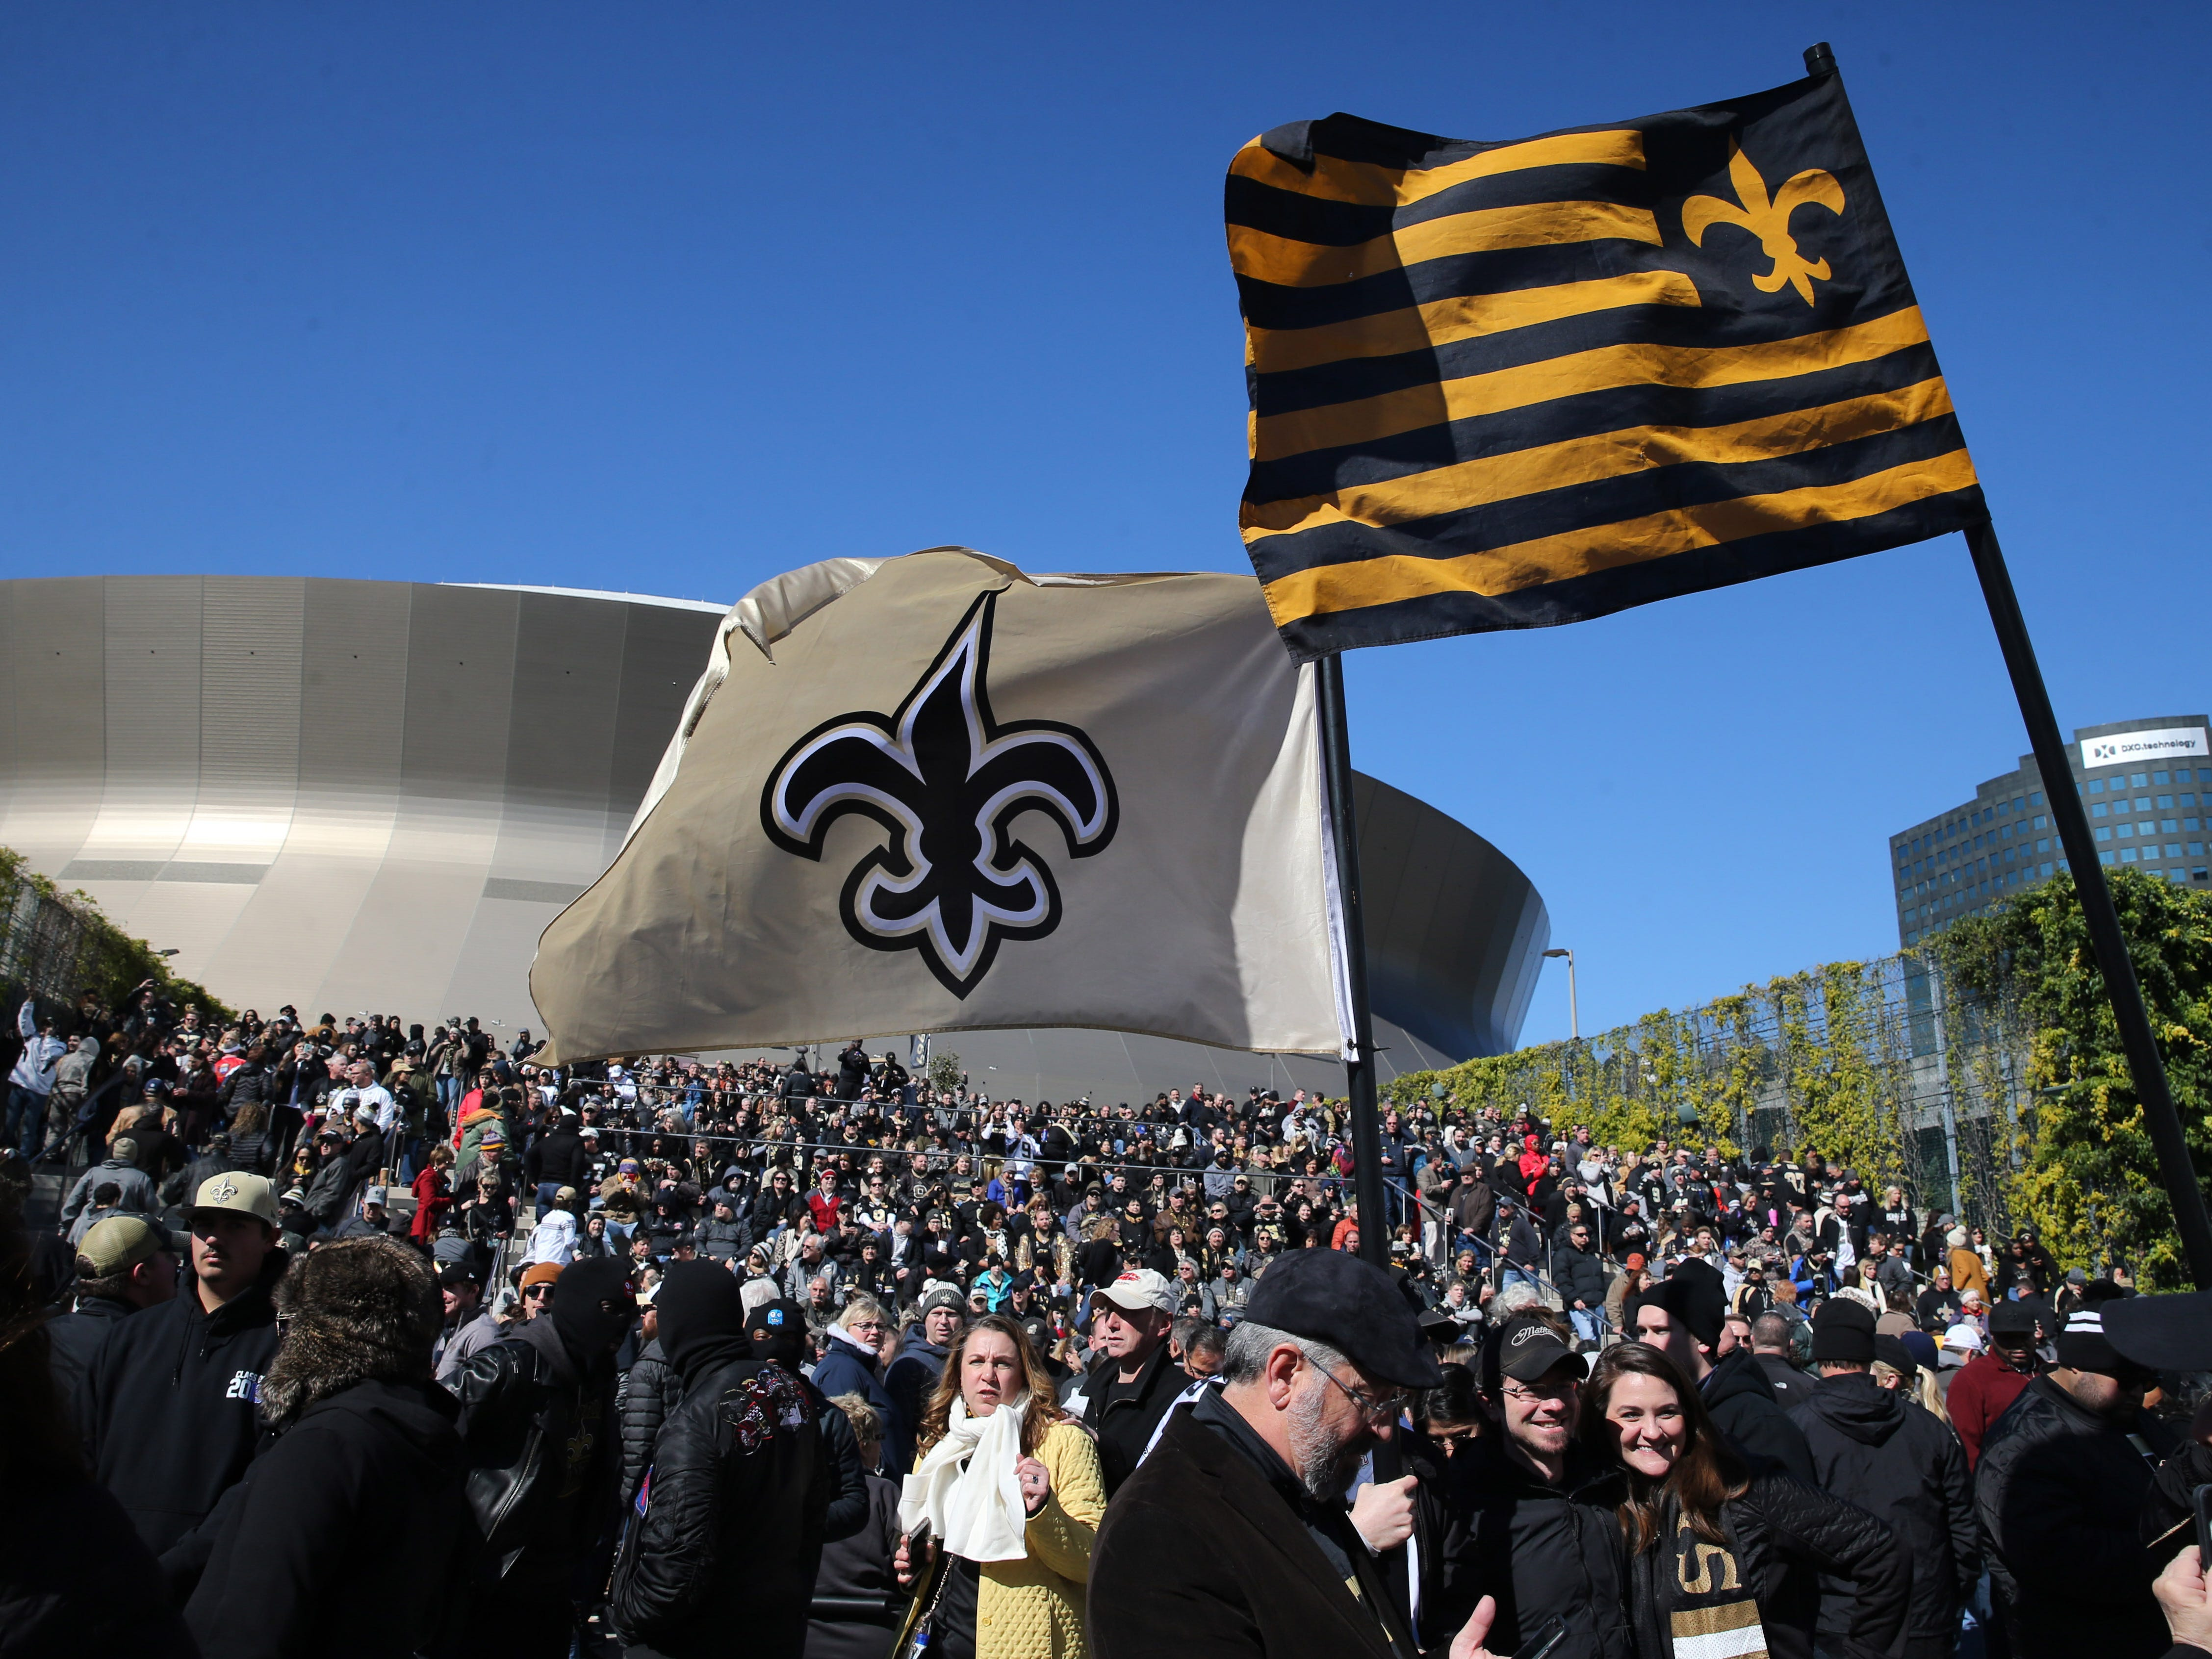 New Orleans Saints fans wave flags outside the Mercedes-Benz Superdome before the NFC Championship game between the Saints and the Los Angeles Rams.